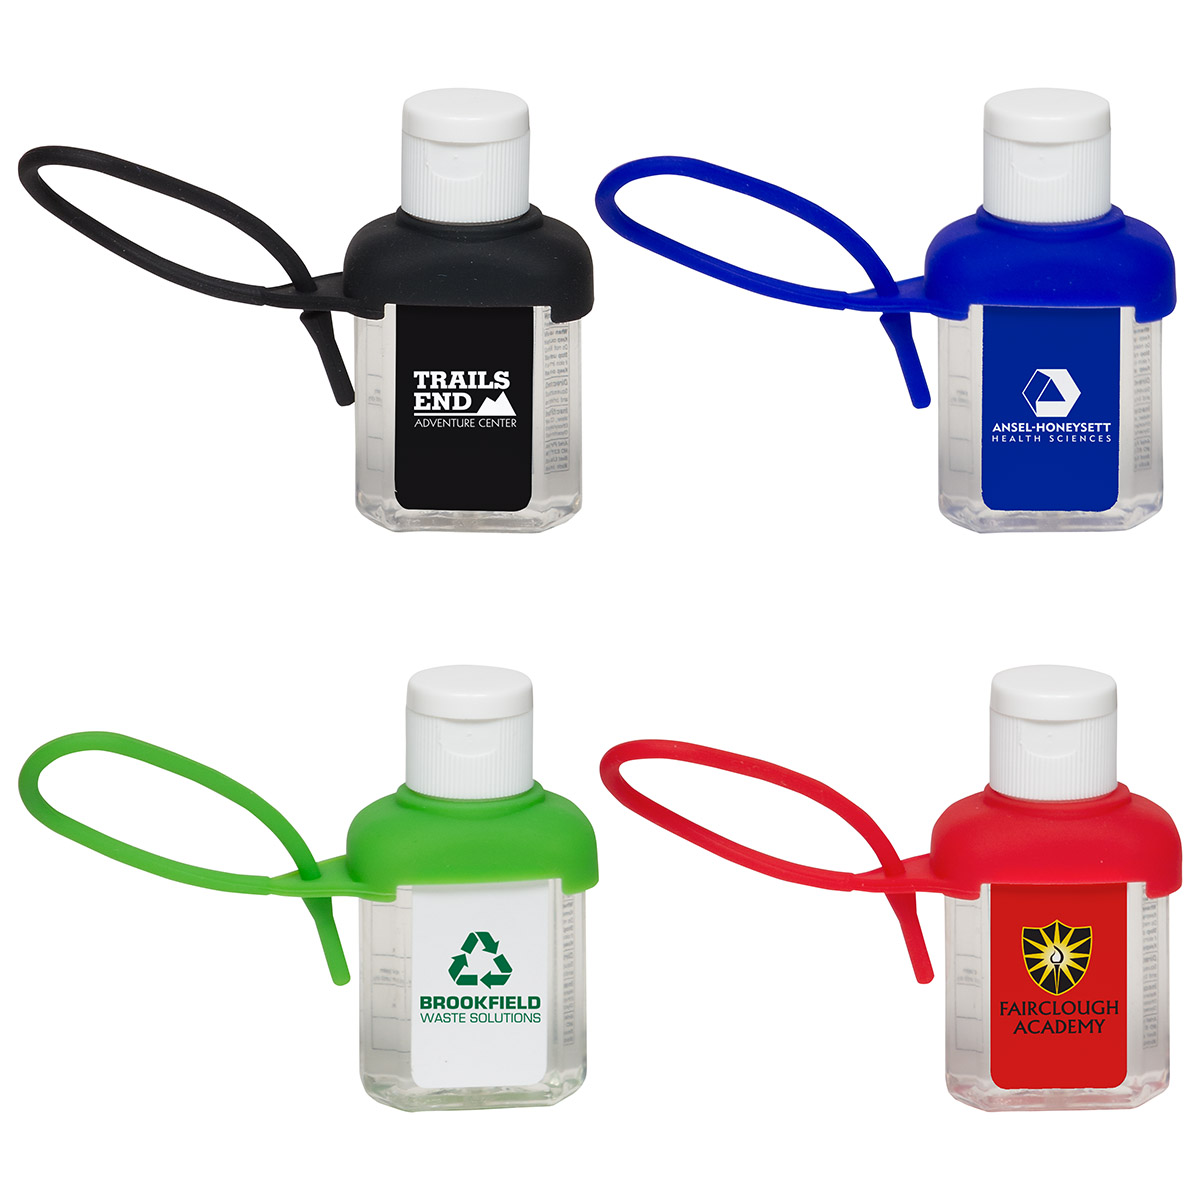 1 Oz. Caddy Strap Alcohol Free Hand Sanitizer, WSA-CA16 - 1 Colour Imprint